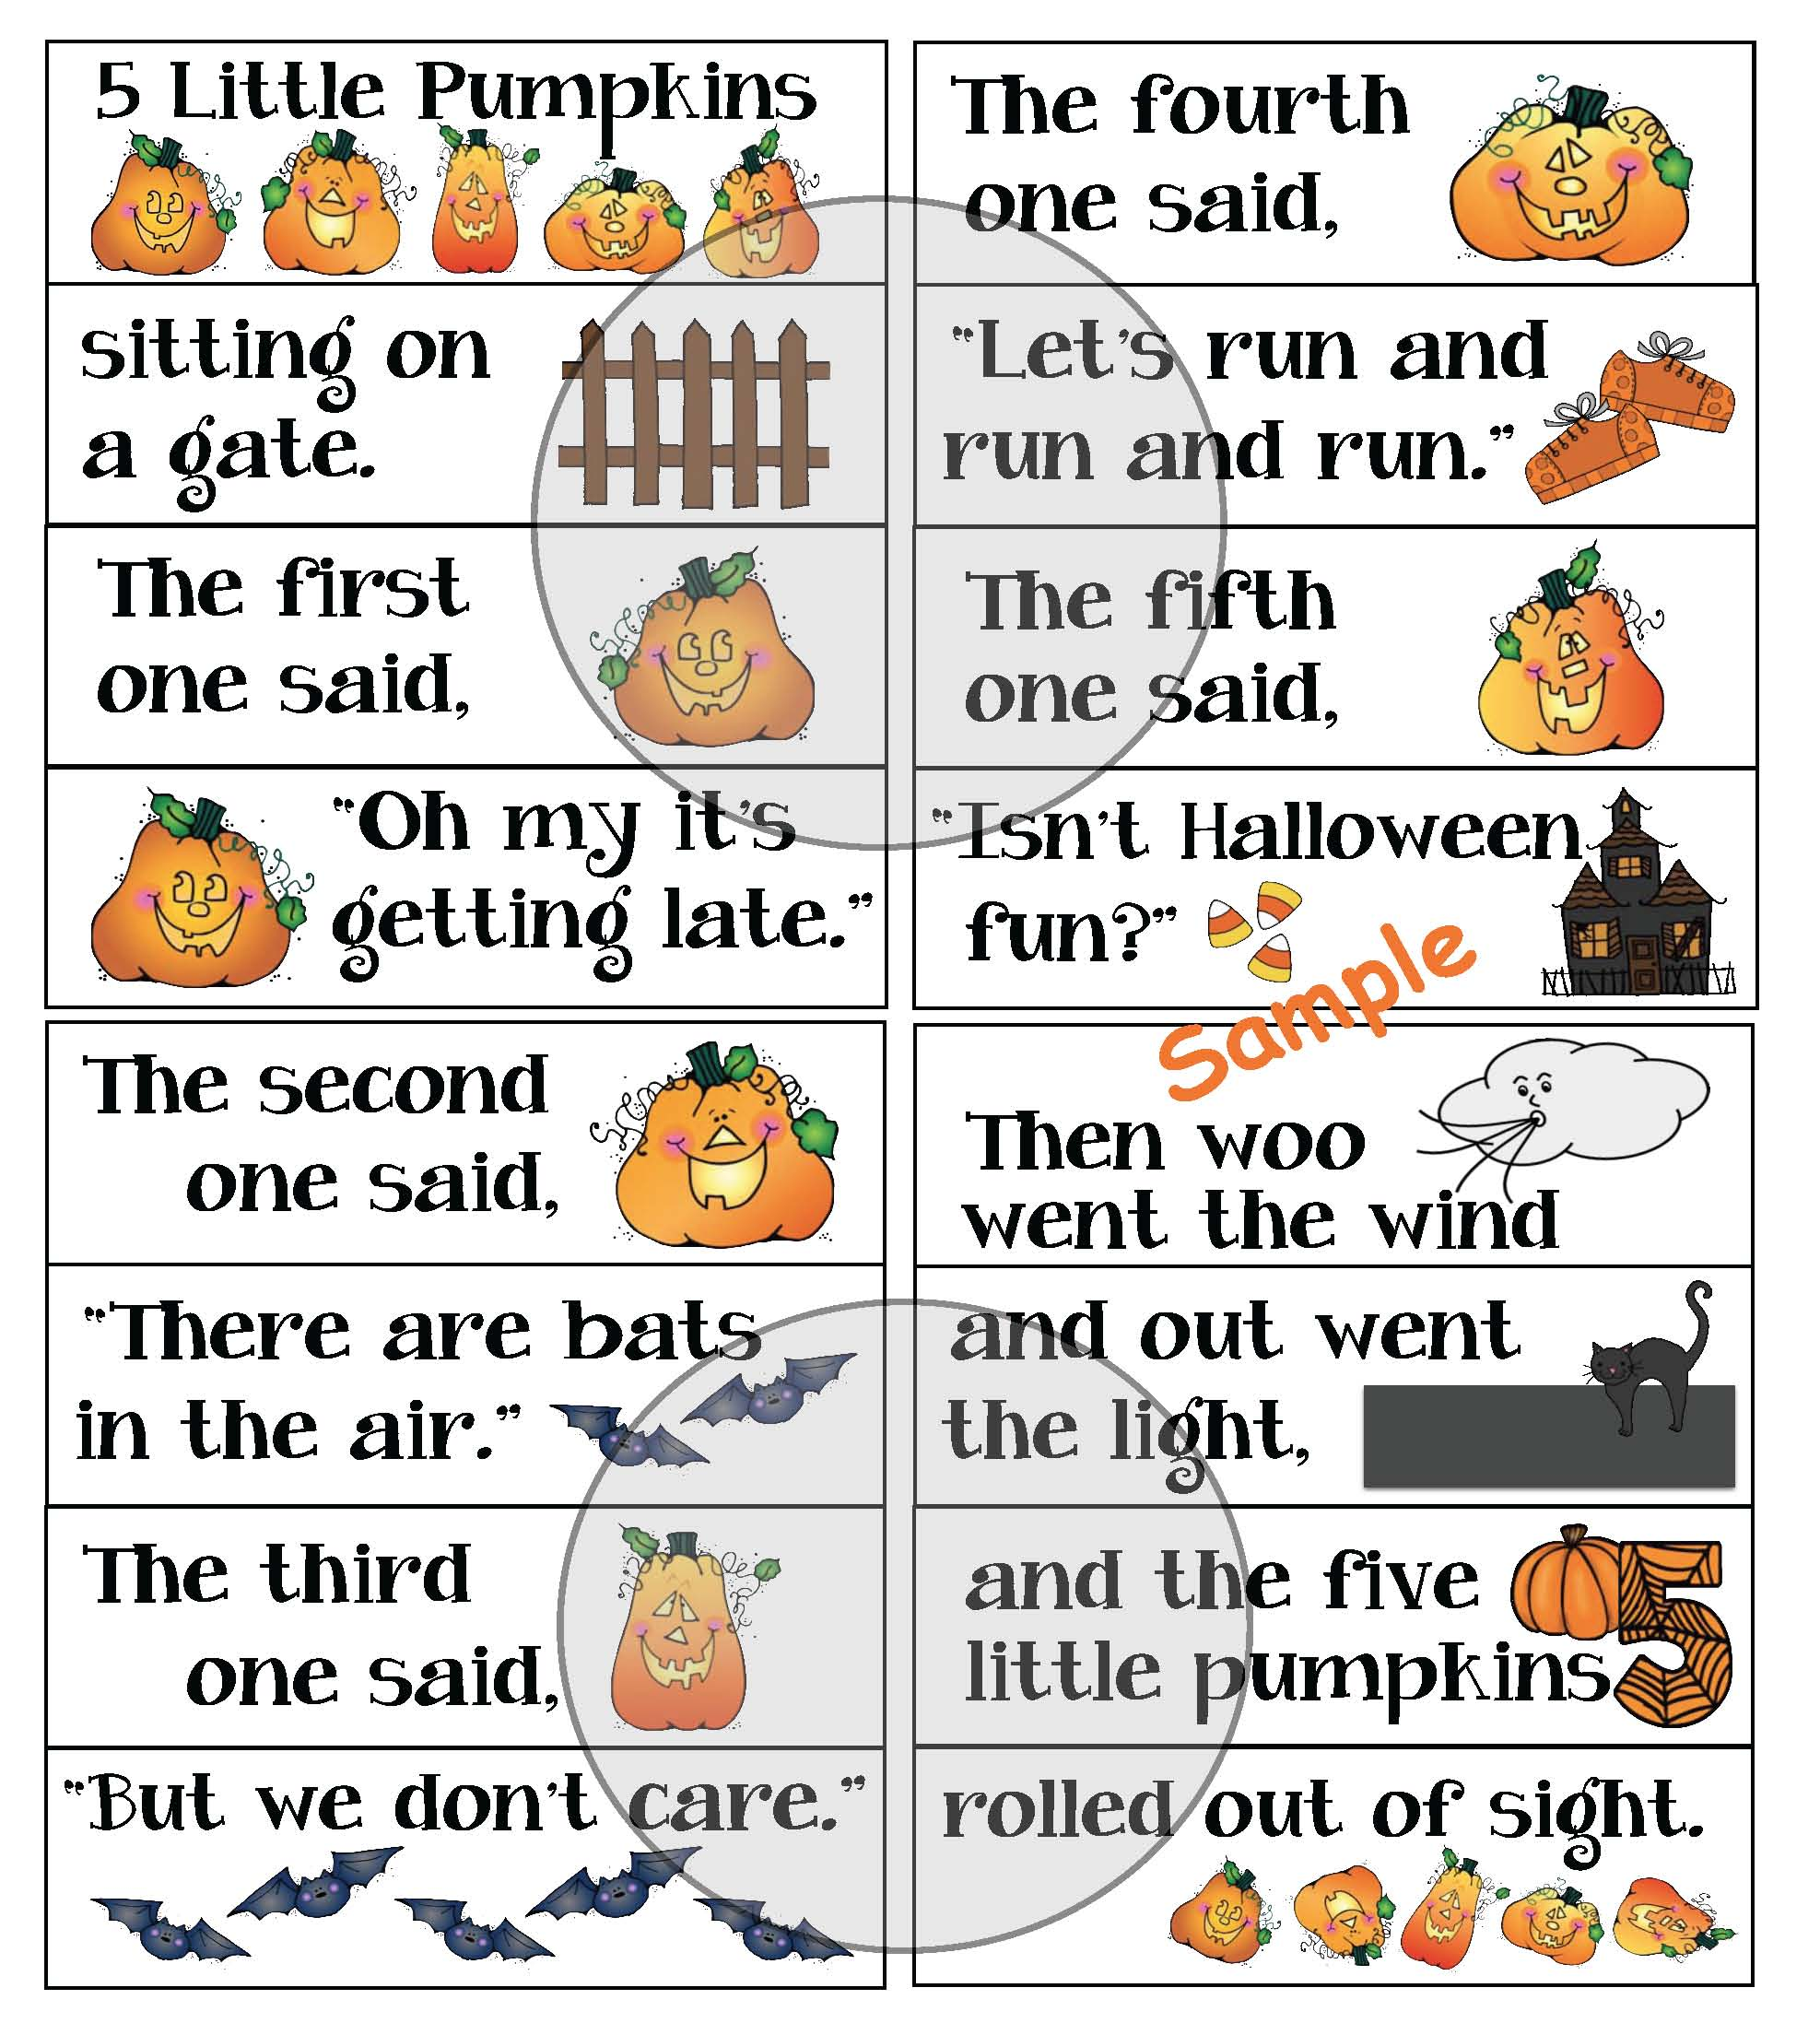 pumpkin activities, pumpkin crafts, crown crafts, crowns, Halloween crowns, math centers, activities for 5 little pumpkins poem, 5 little pumpkins poem, 5 little pumpkins crafts, 5 little pumpkins activities, common core pumpkins, ordinal numbers, october poems, october poetry